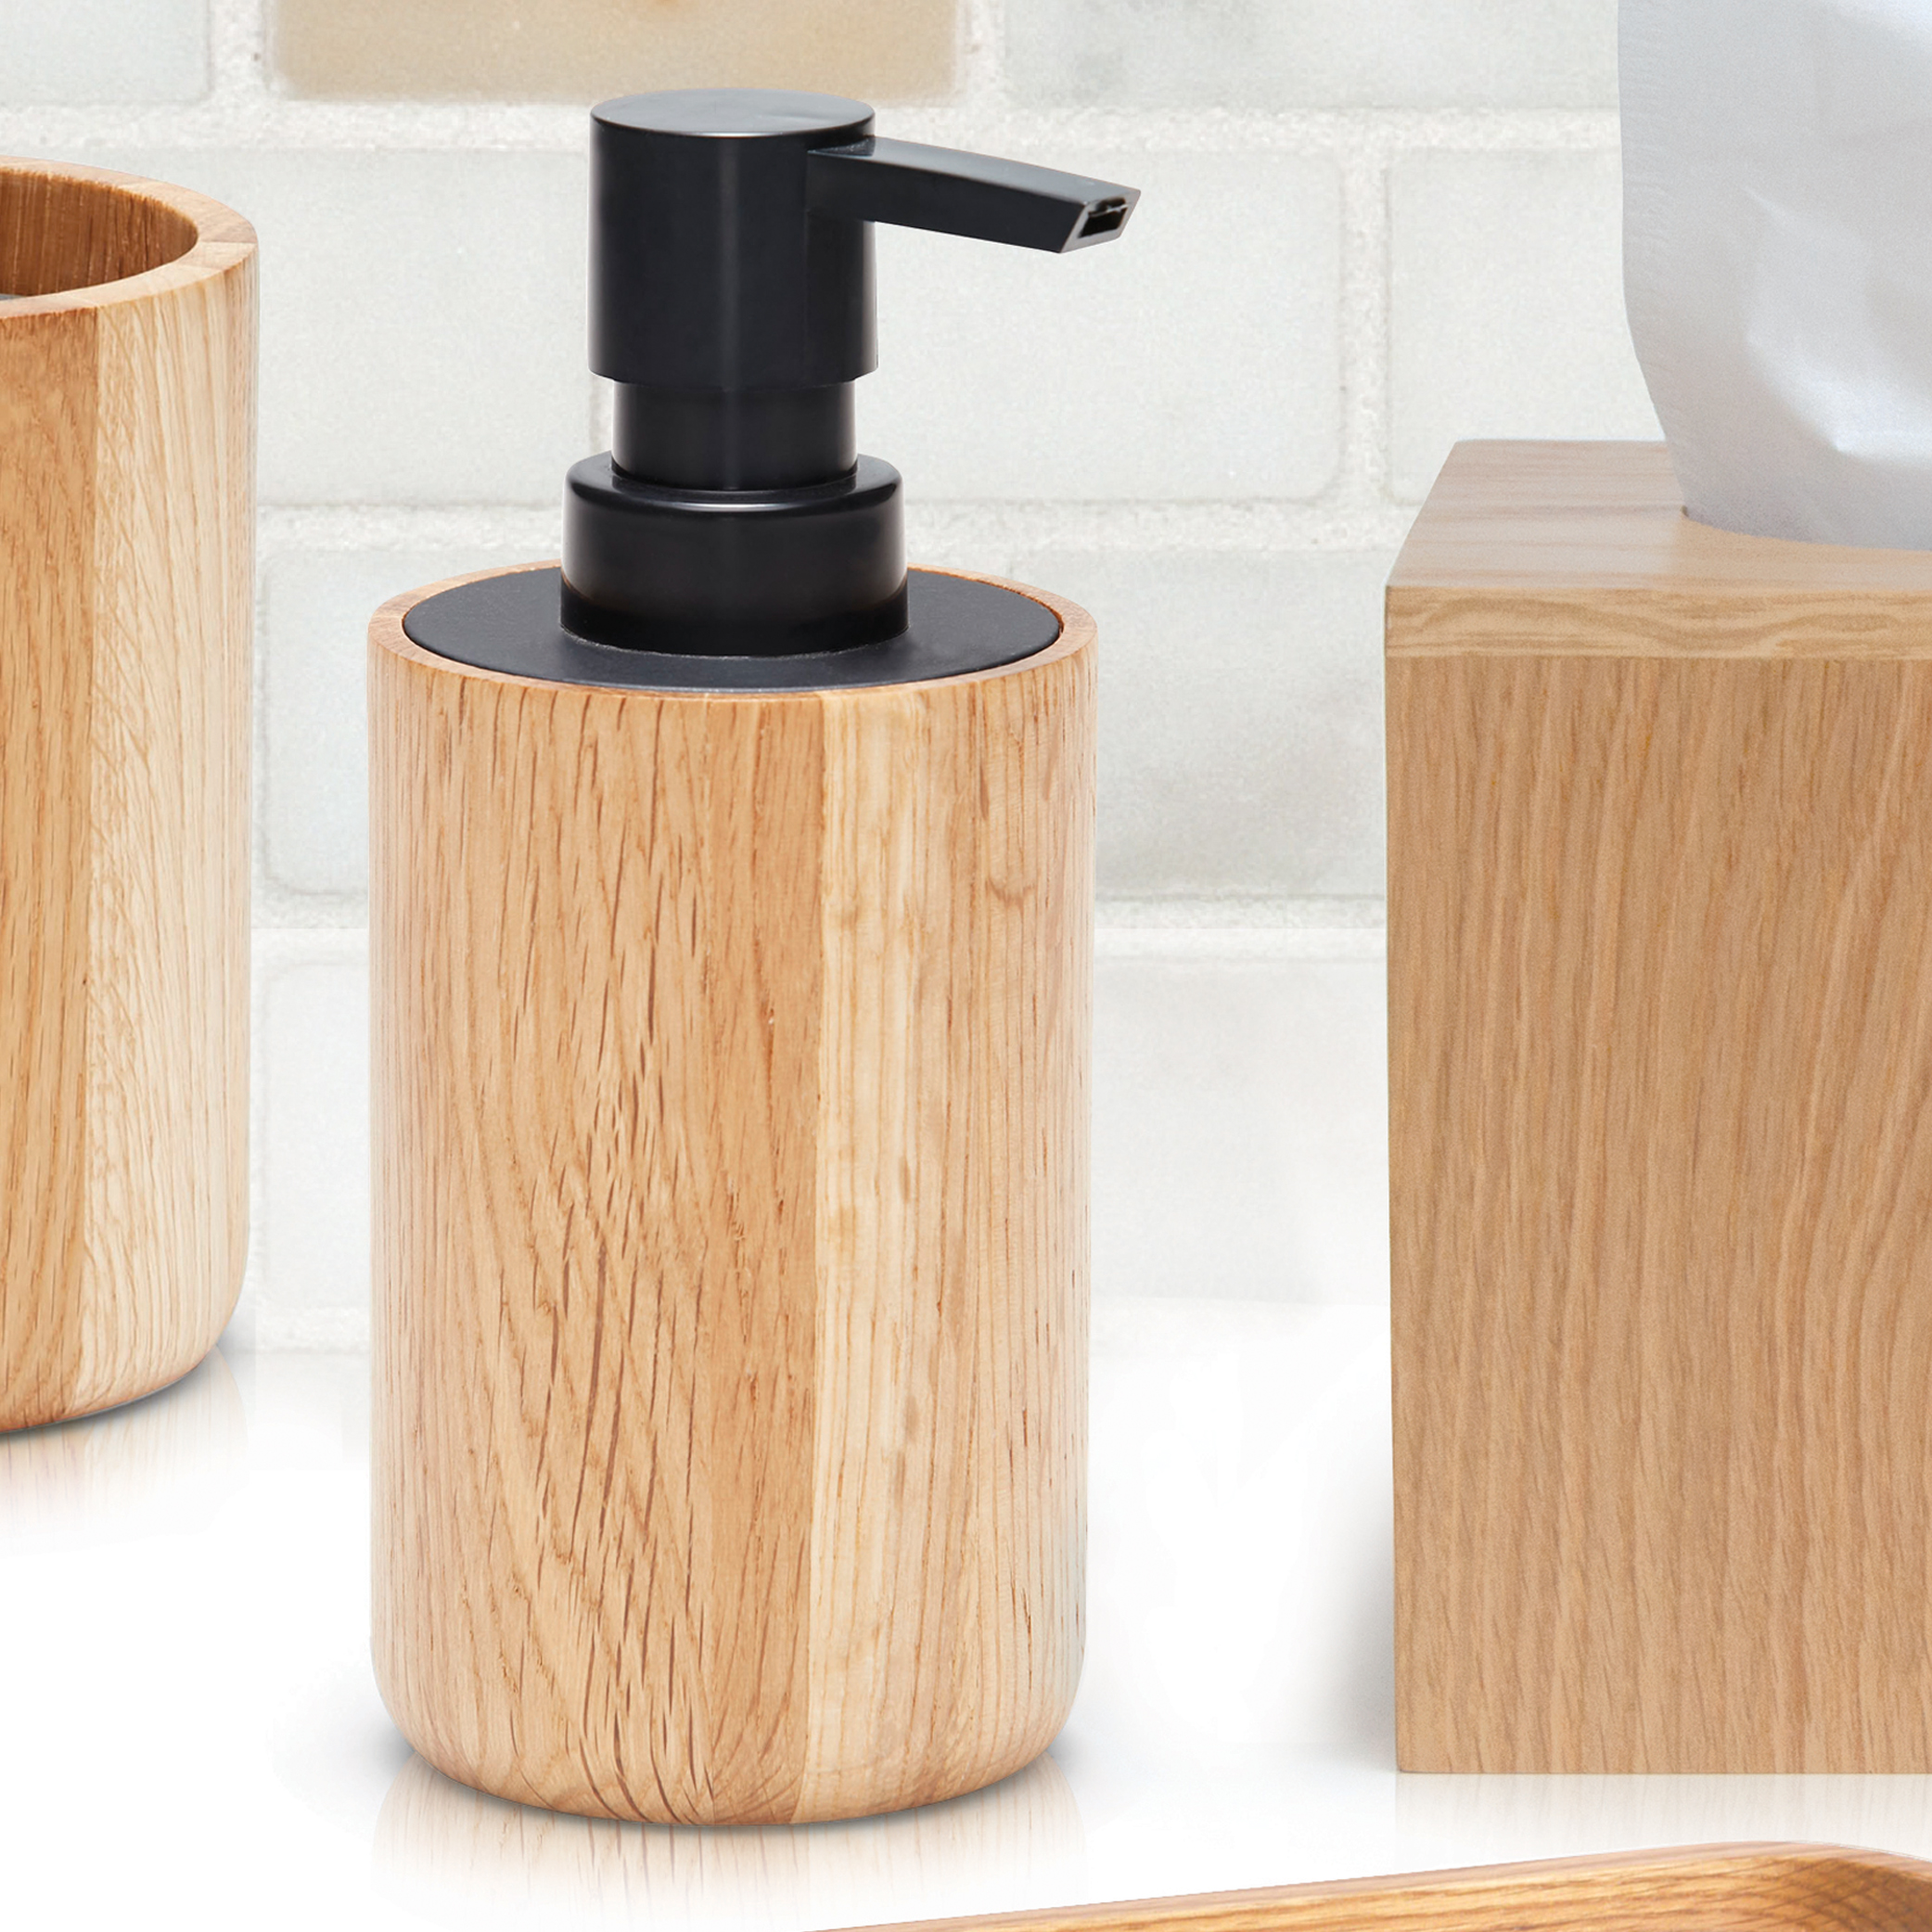 Soap Dispensers & Trays